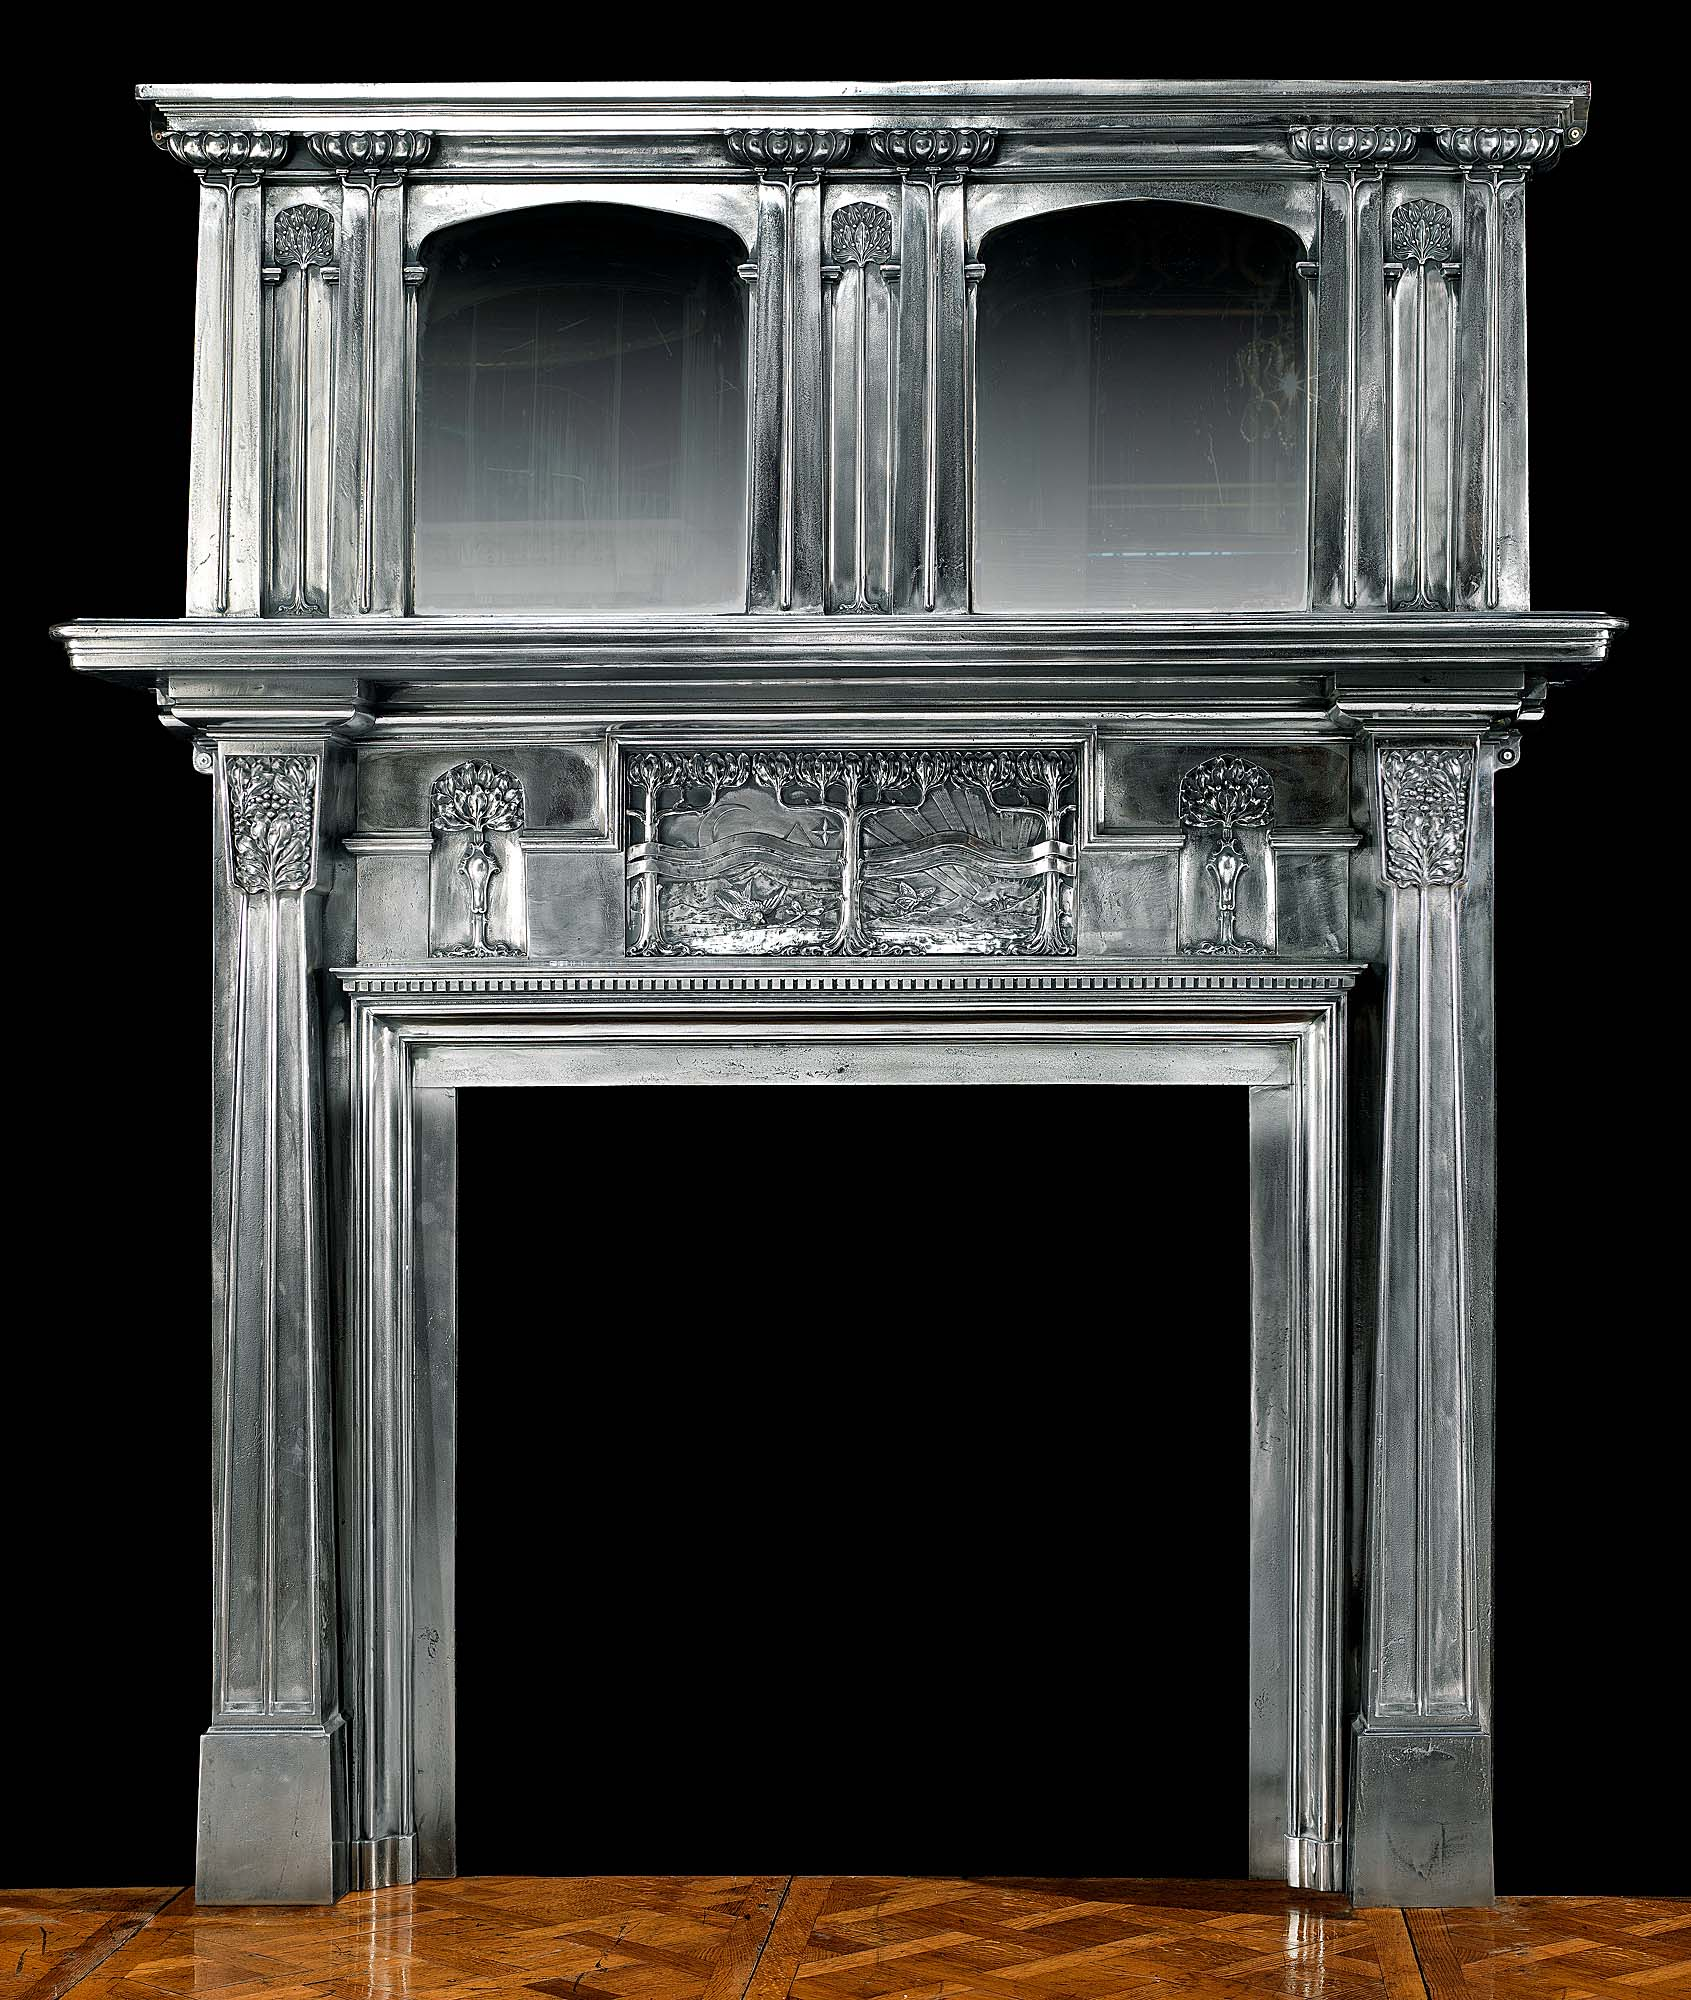 calgary fireplace fireplaces tiled hearths hearth vintage antique chambers oer surround tiles multi beams